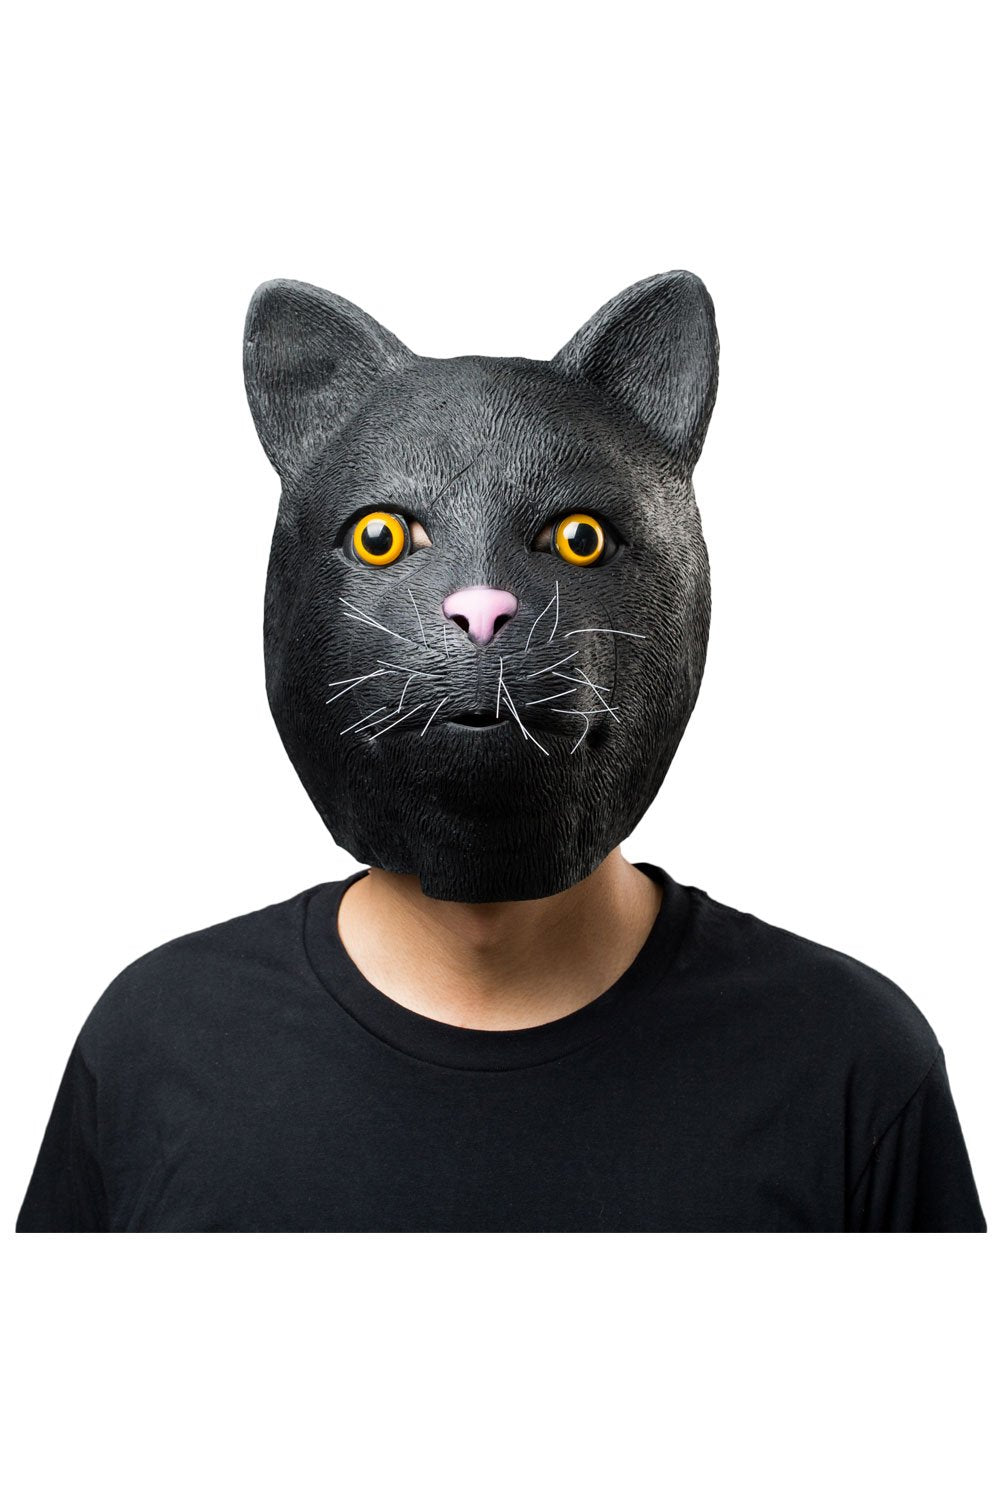 Black Cat Mask Halloween Animal Latex Masks Full Face Mask Adult Cosplay Props